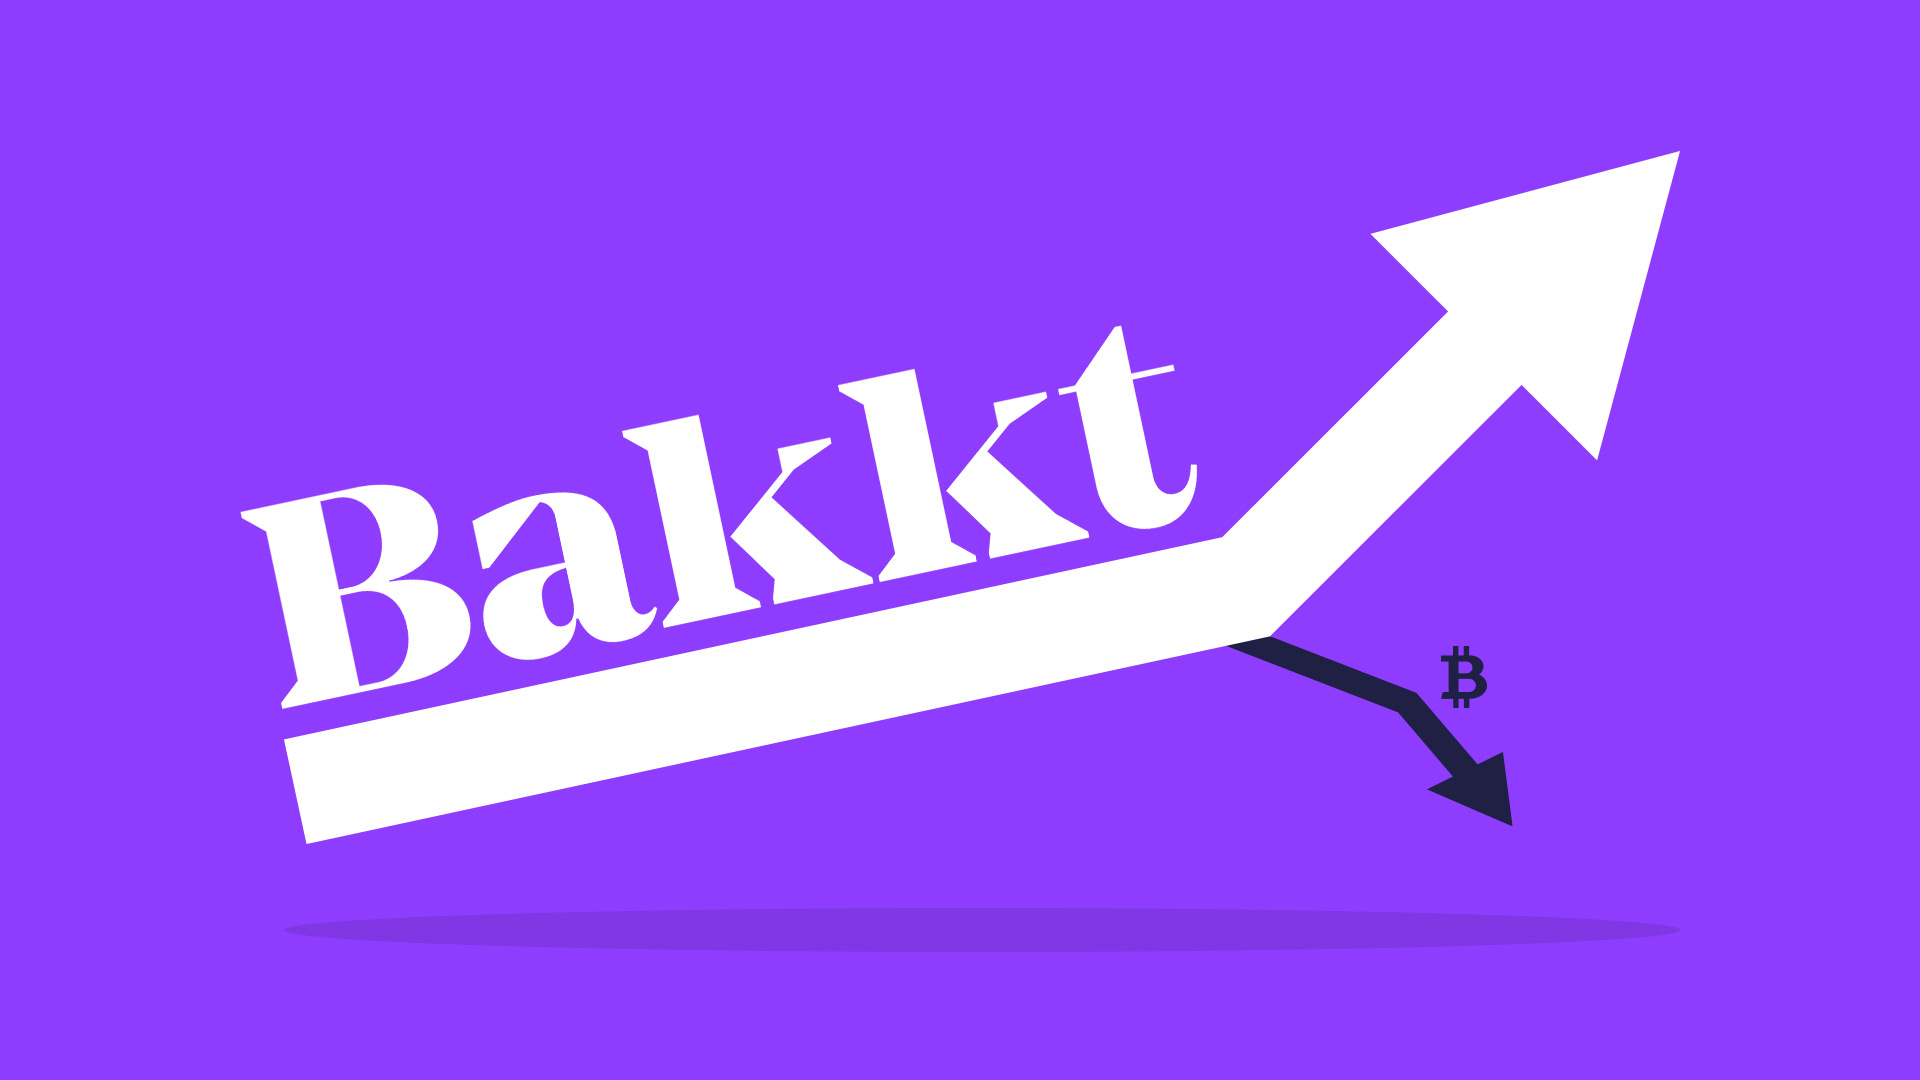 Bakkt's volumes are soaring as bitcoin sinks, and it could